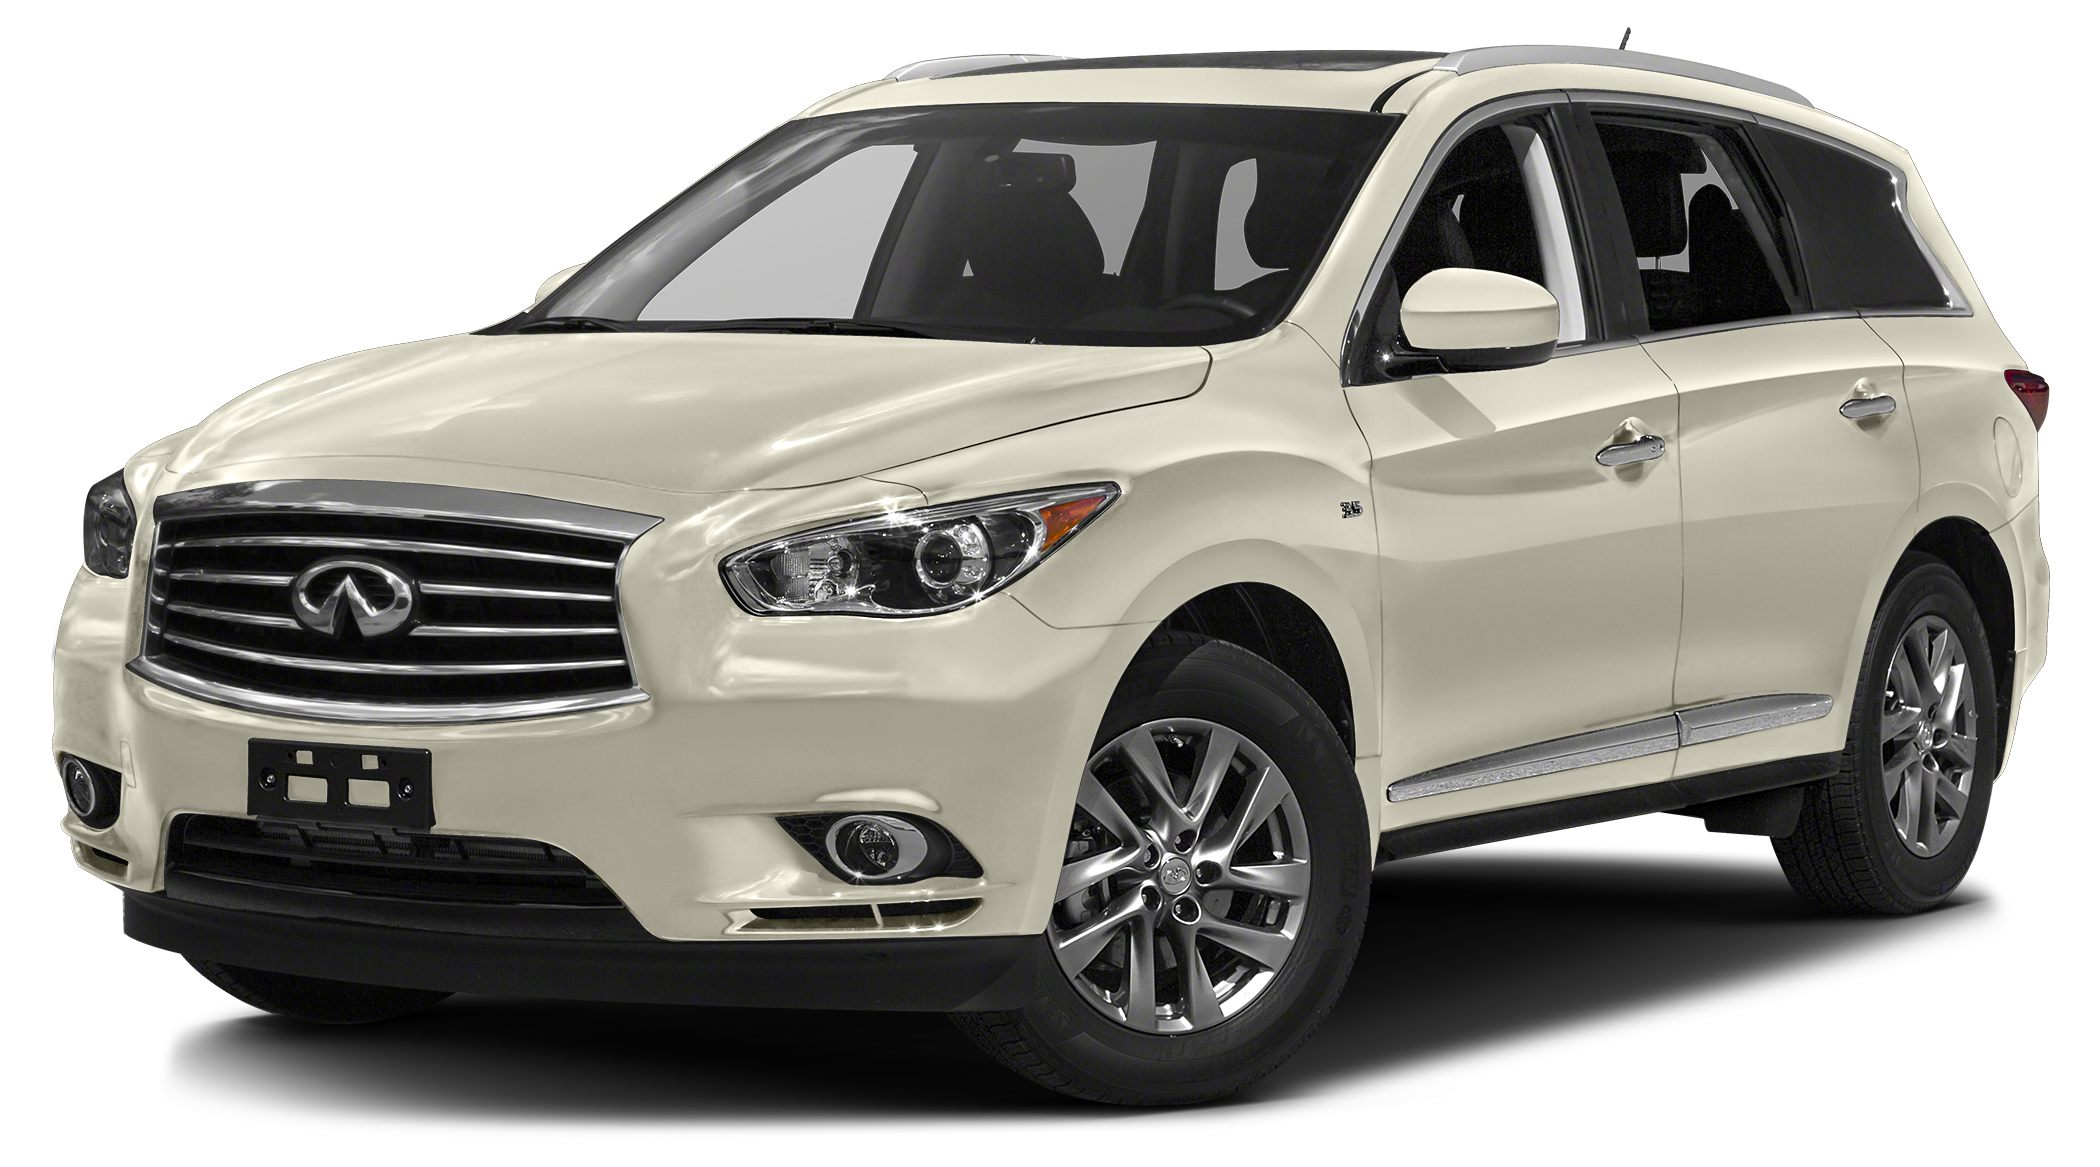 2015 Infiniti QX60 Base WARRANTY FOREVER included at NO EXTRA COST See our Excellent Reviews